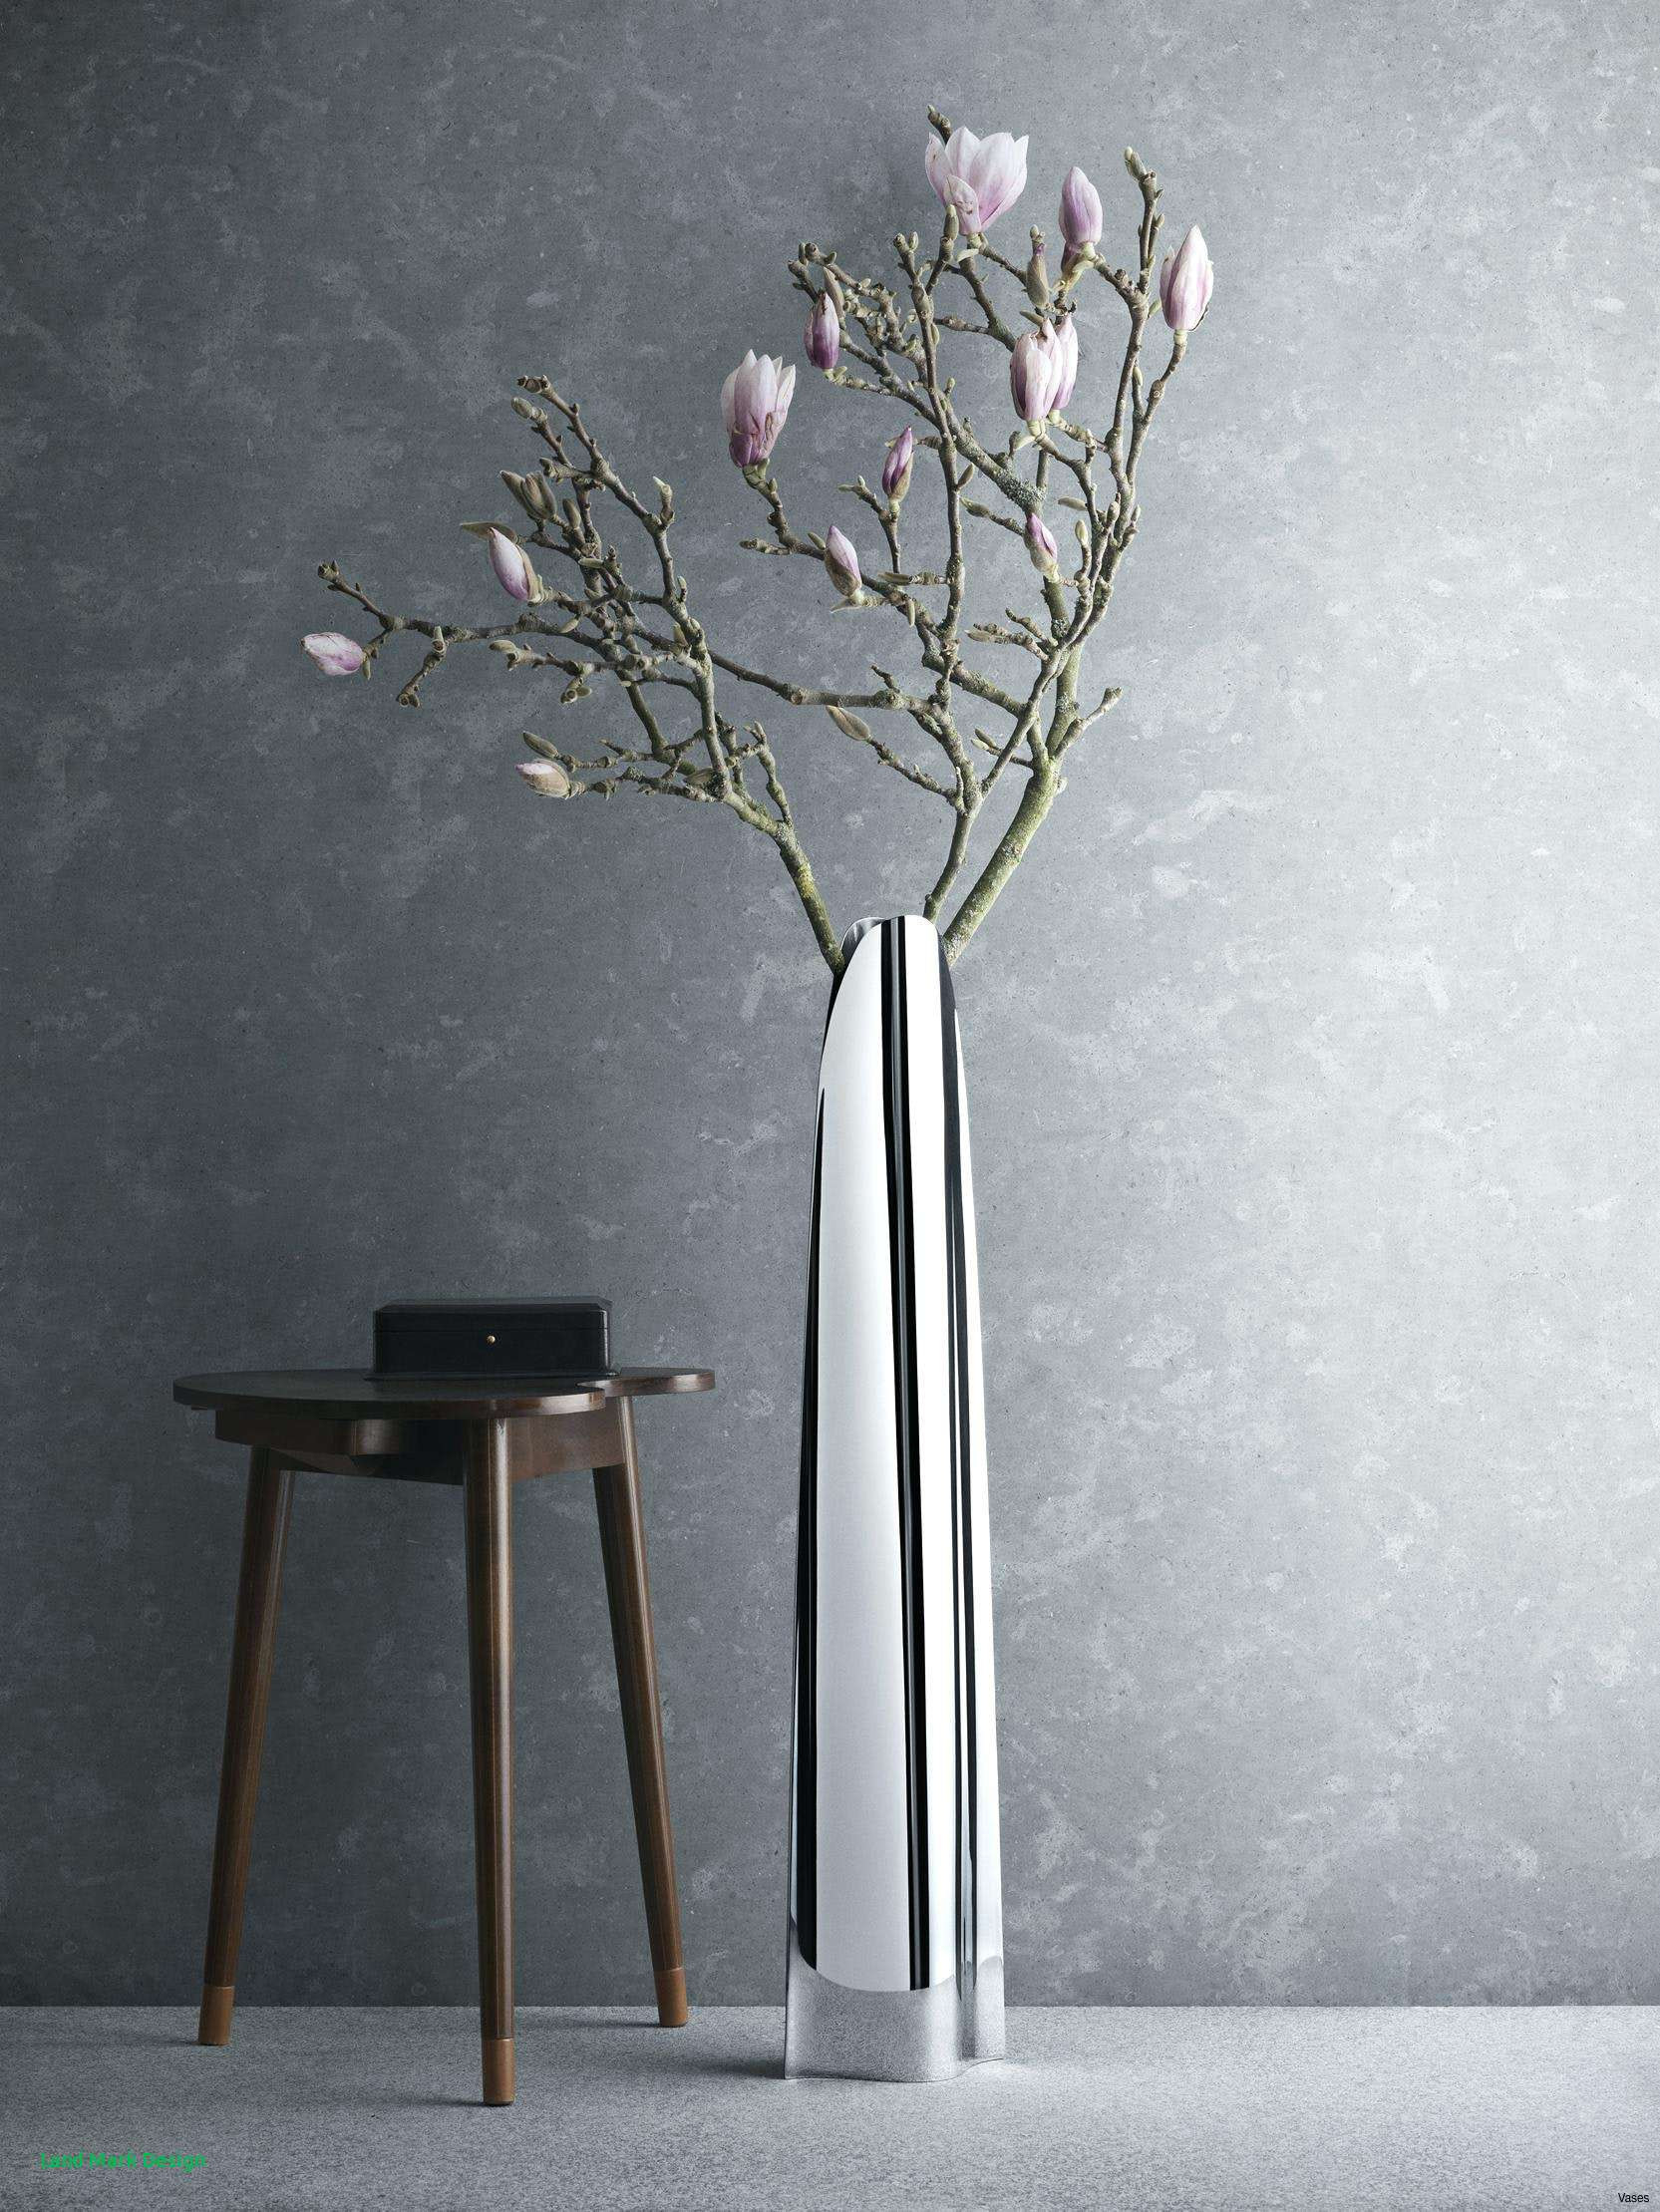 3 feet tall vases of modern tall vases photograph 14 awesome decorative vase designs for regarding gallery of modern tall vases